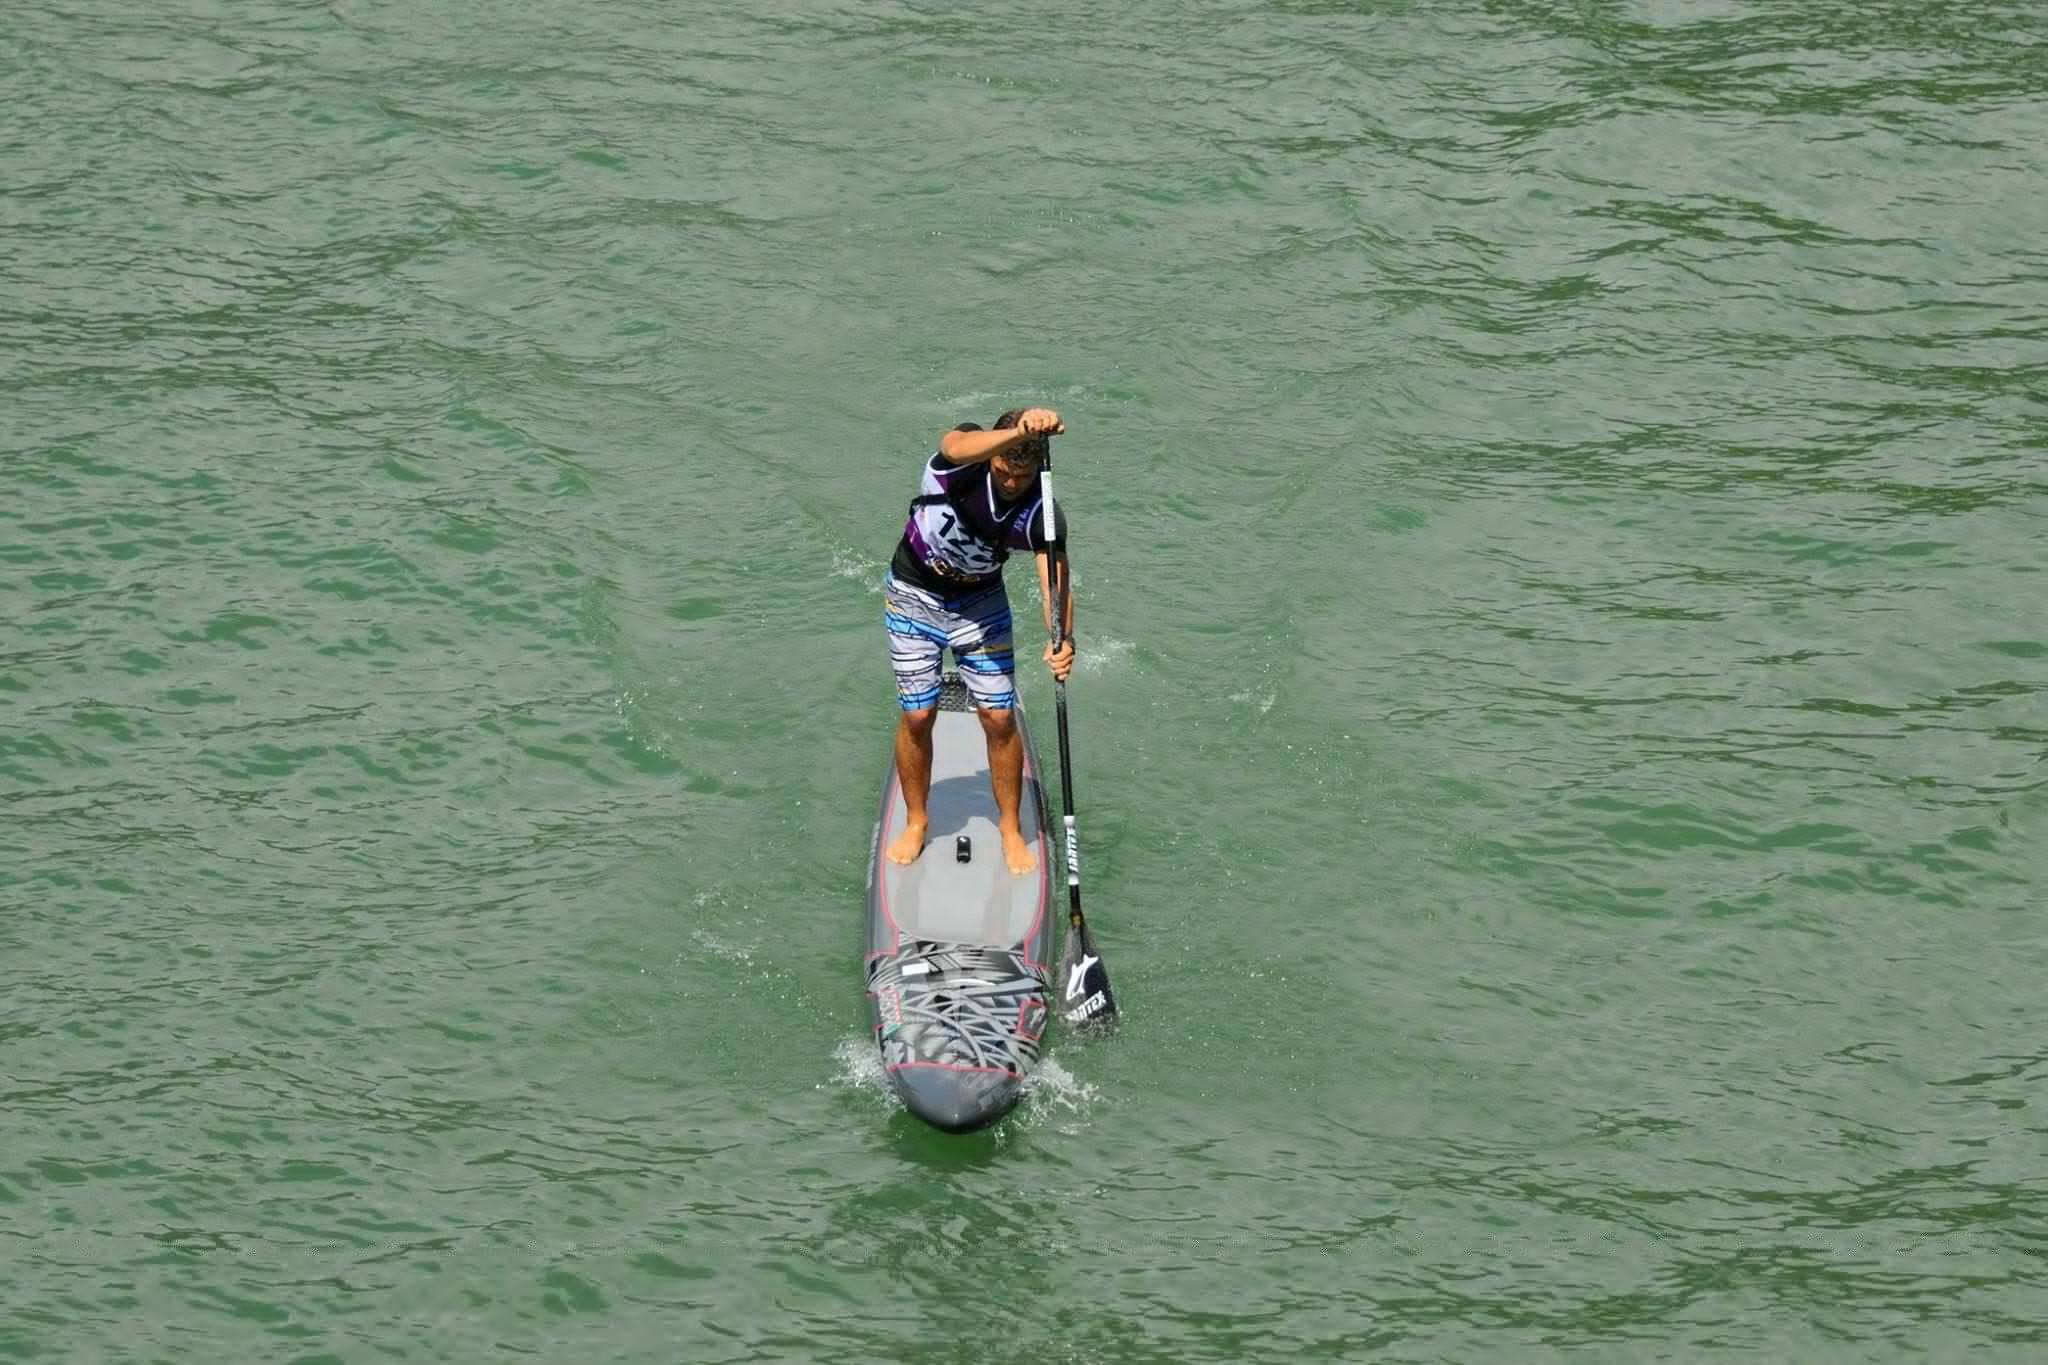 stand up paddle board racing and equipment